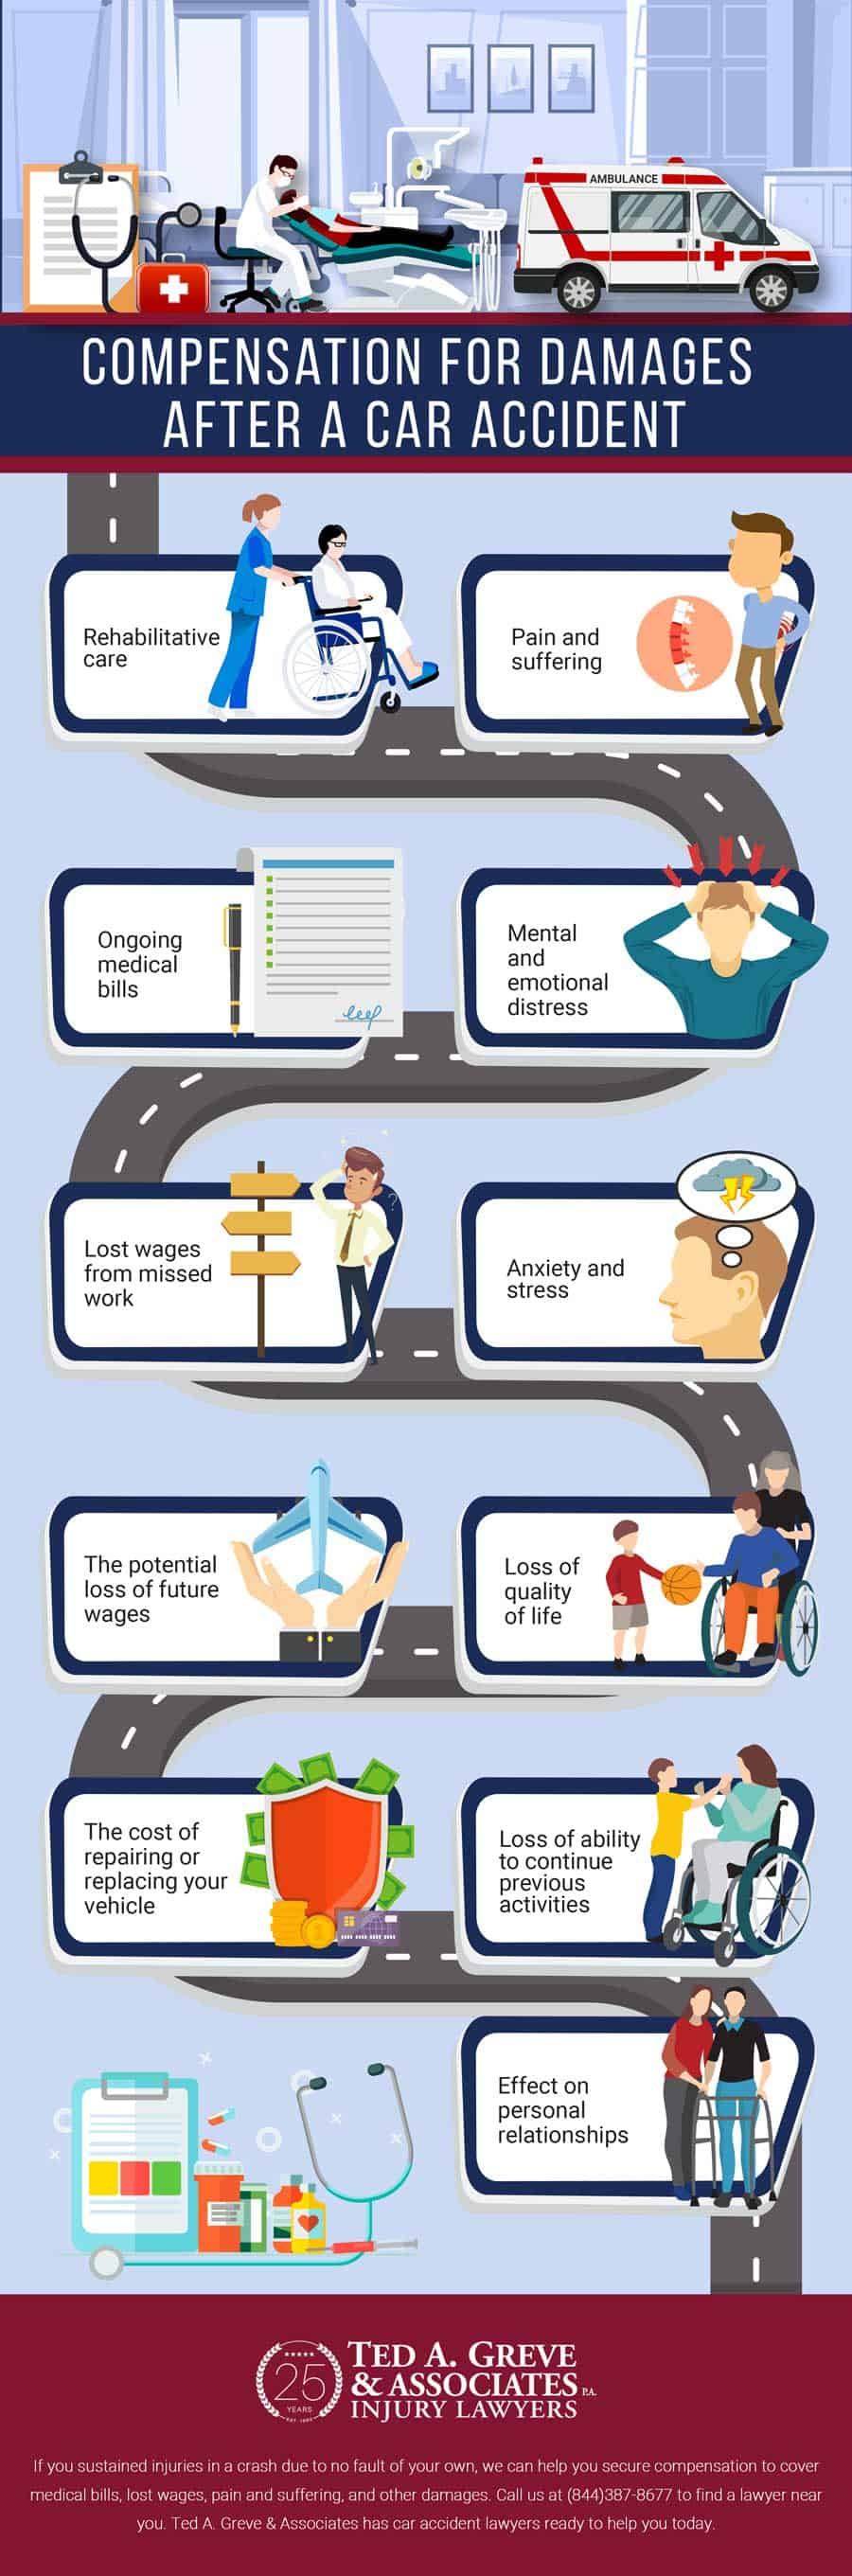 Car accident compensation infographic Ted Greve & Associates